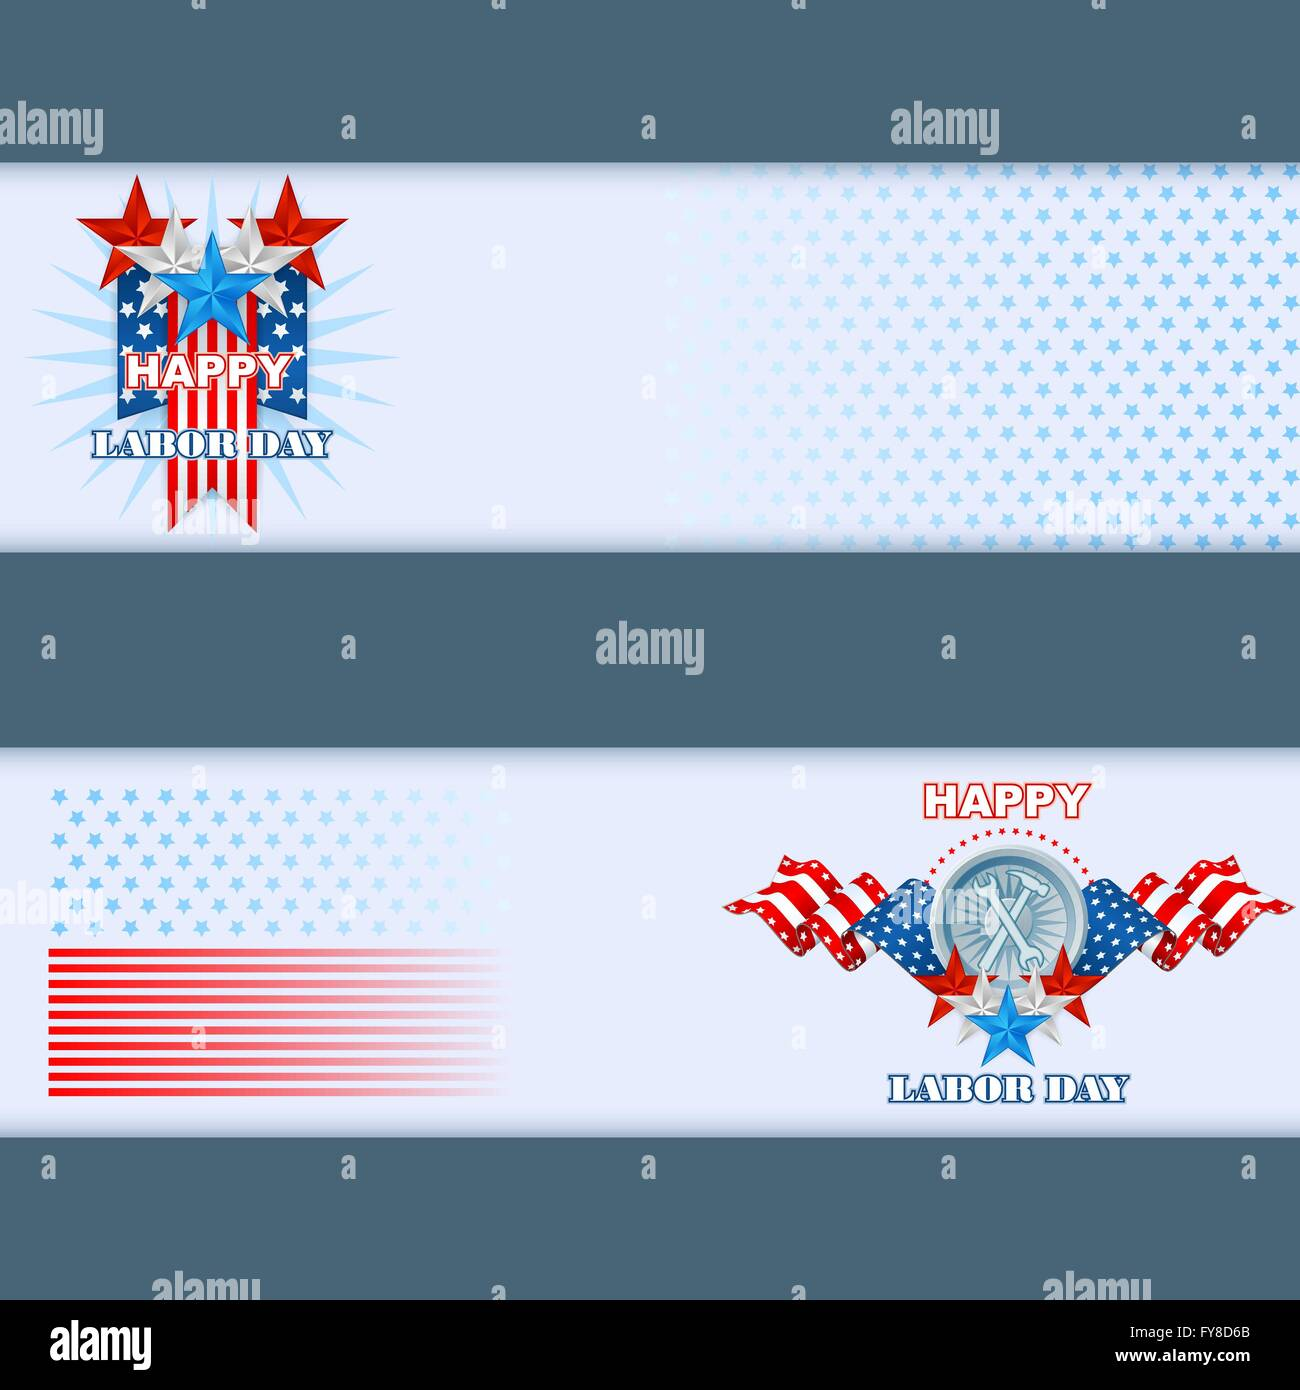 set of web banner design template with national american flag colors